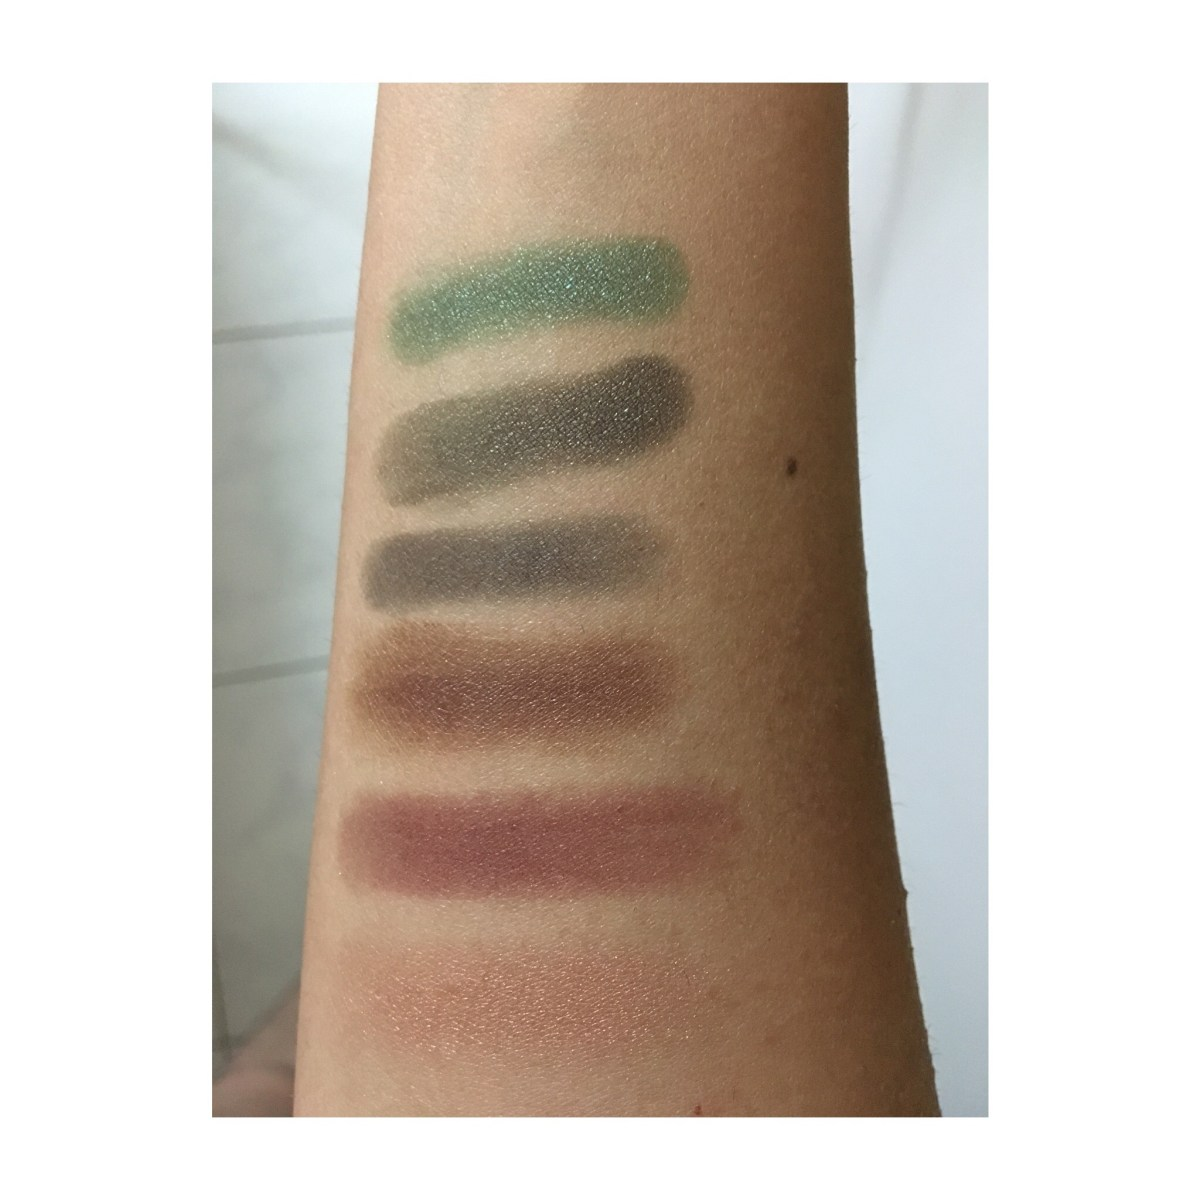 Swatches of Colourpop Eyeshadows-Part II